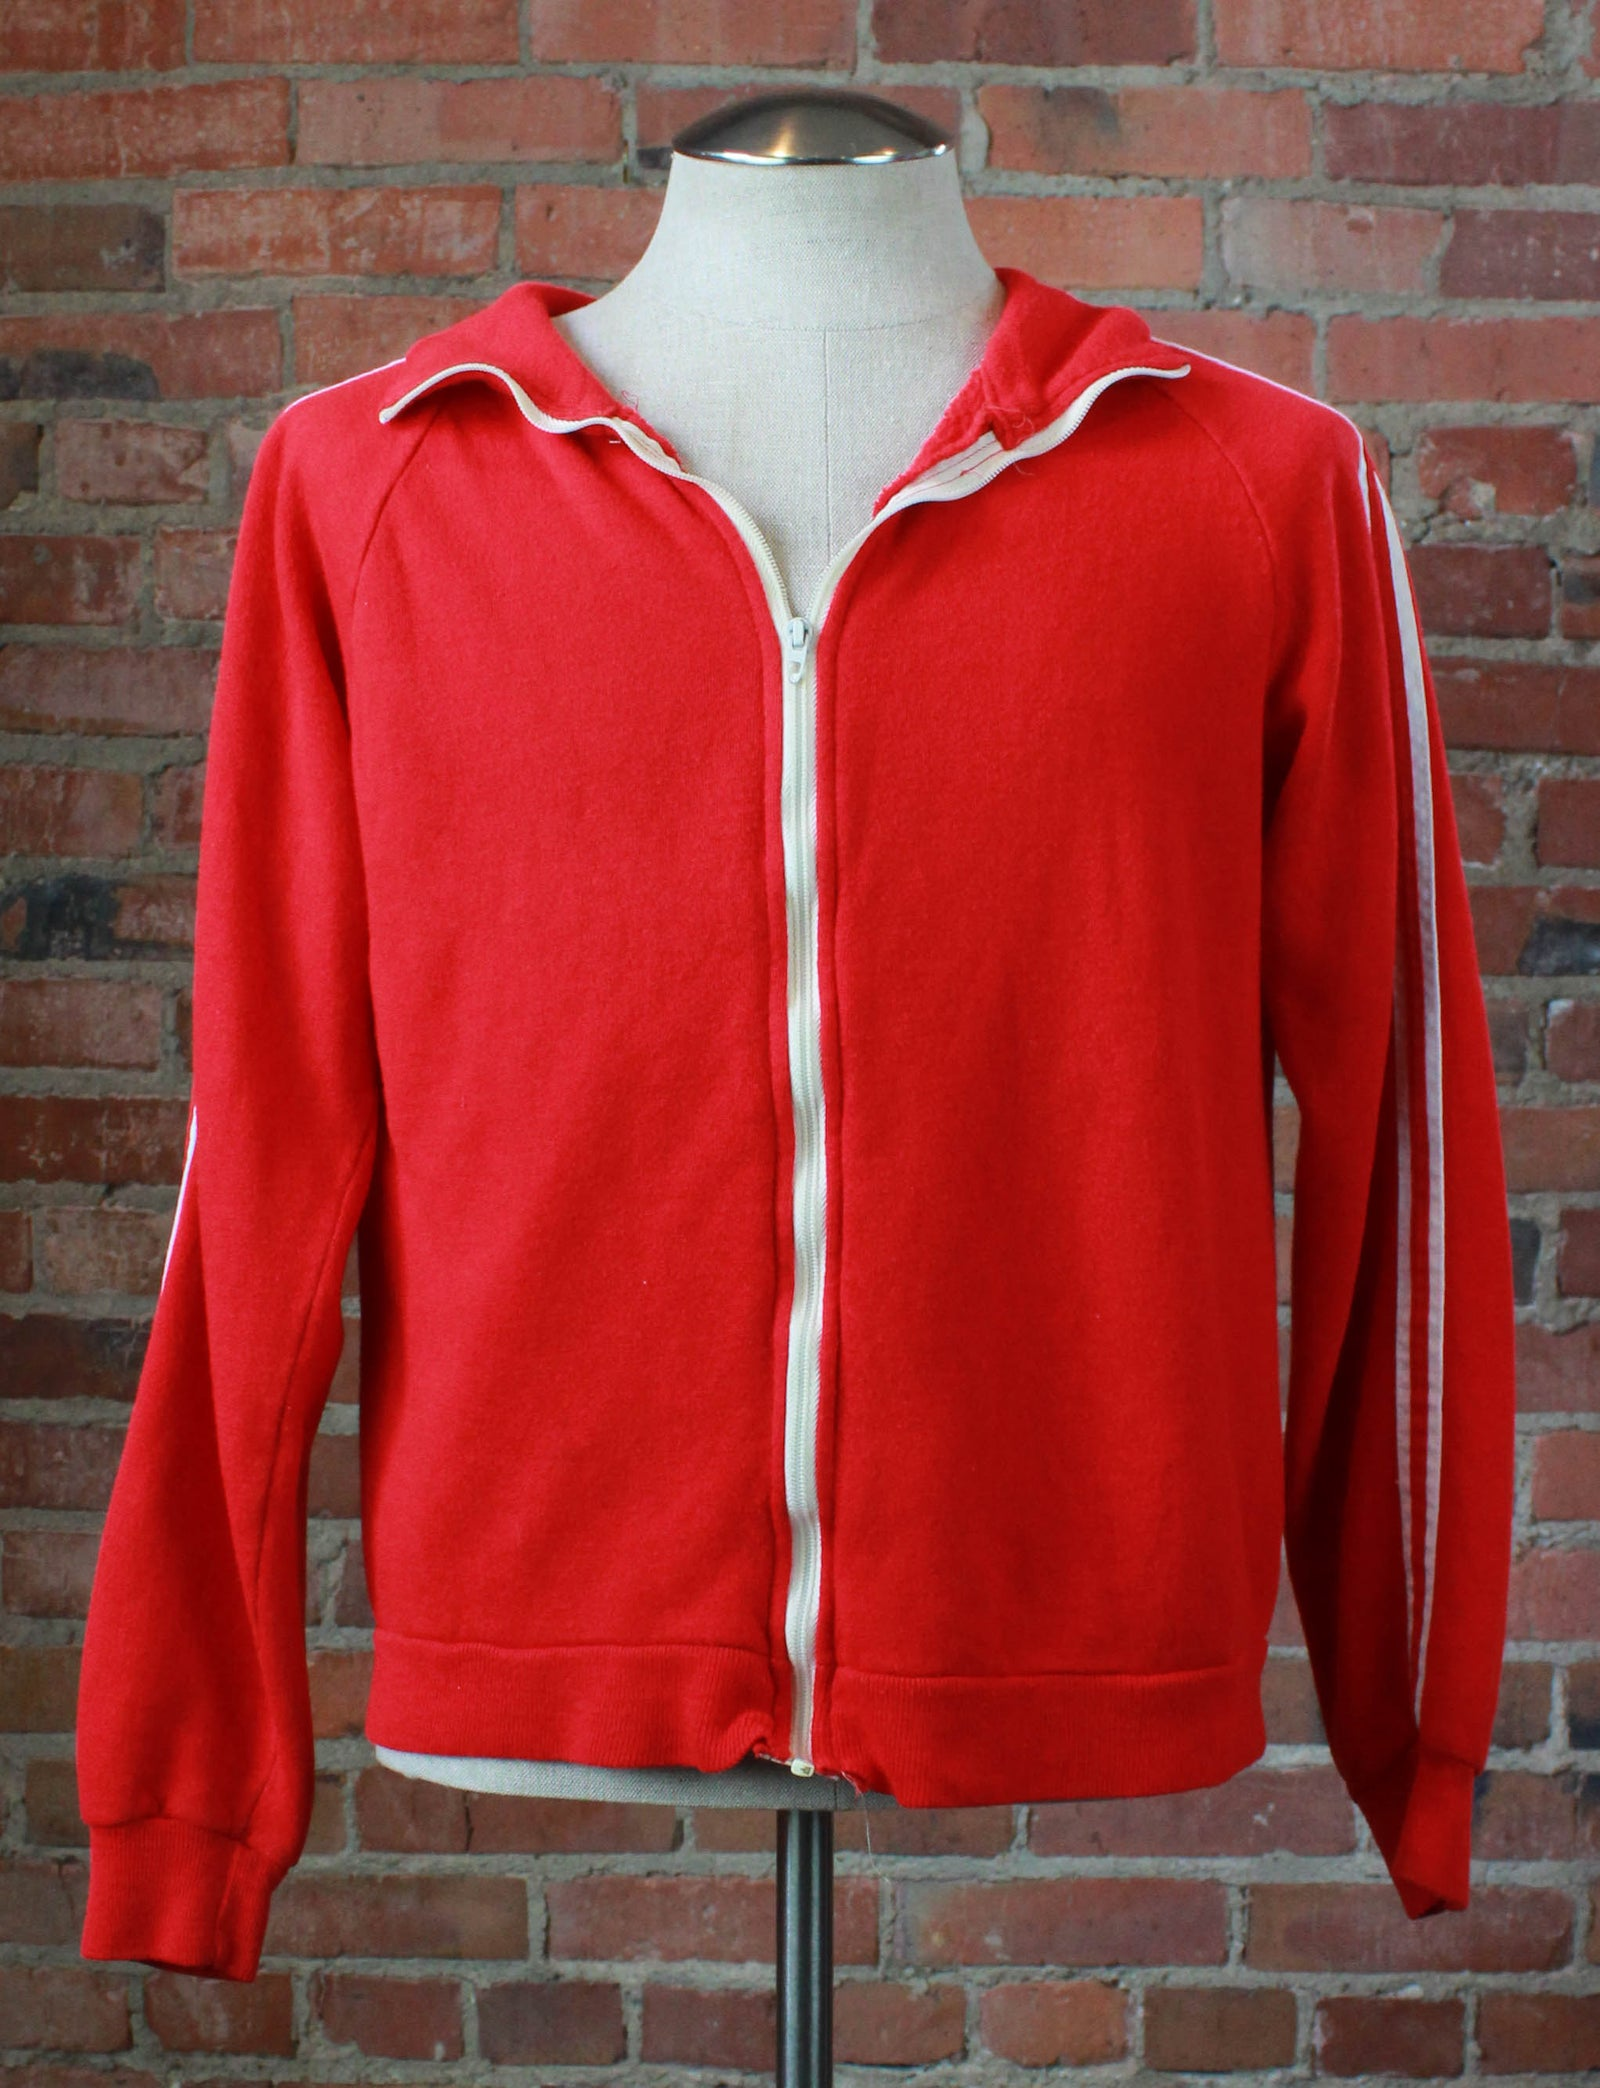 Vintage 70's Warm Up Sweatshirt Zip Up Striped Red White Unisex Medium/Large